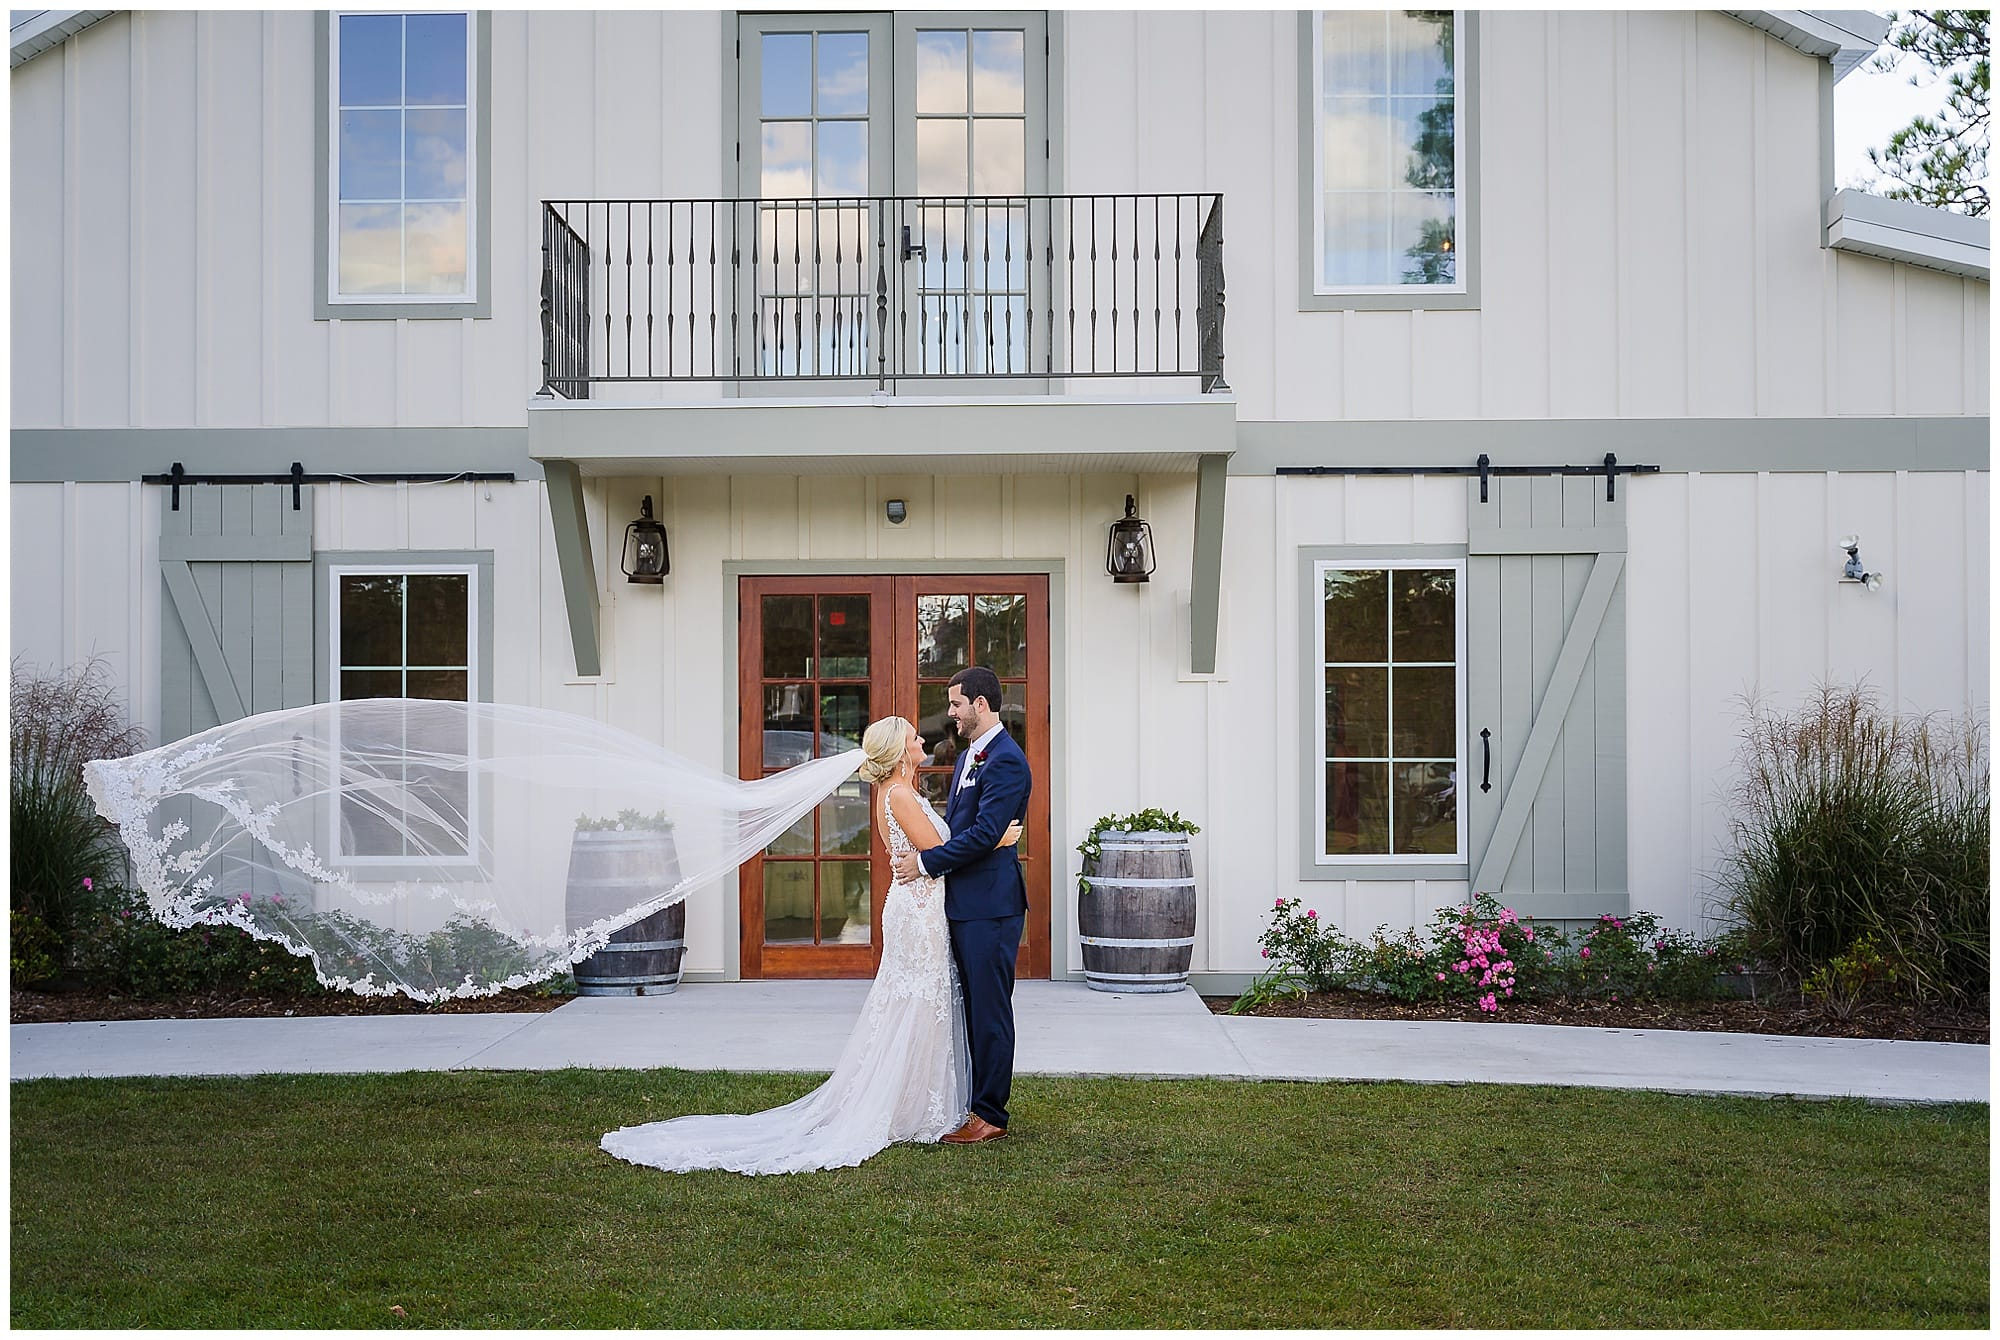 The Sadie Jane Wedding Venue bridal couple holding each other veil flying